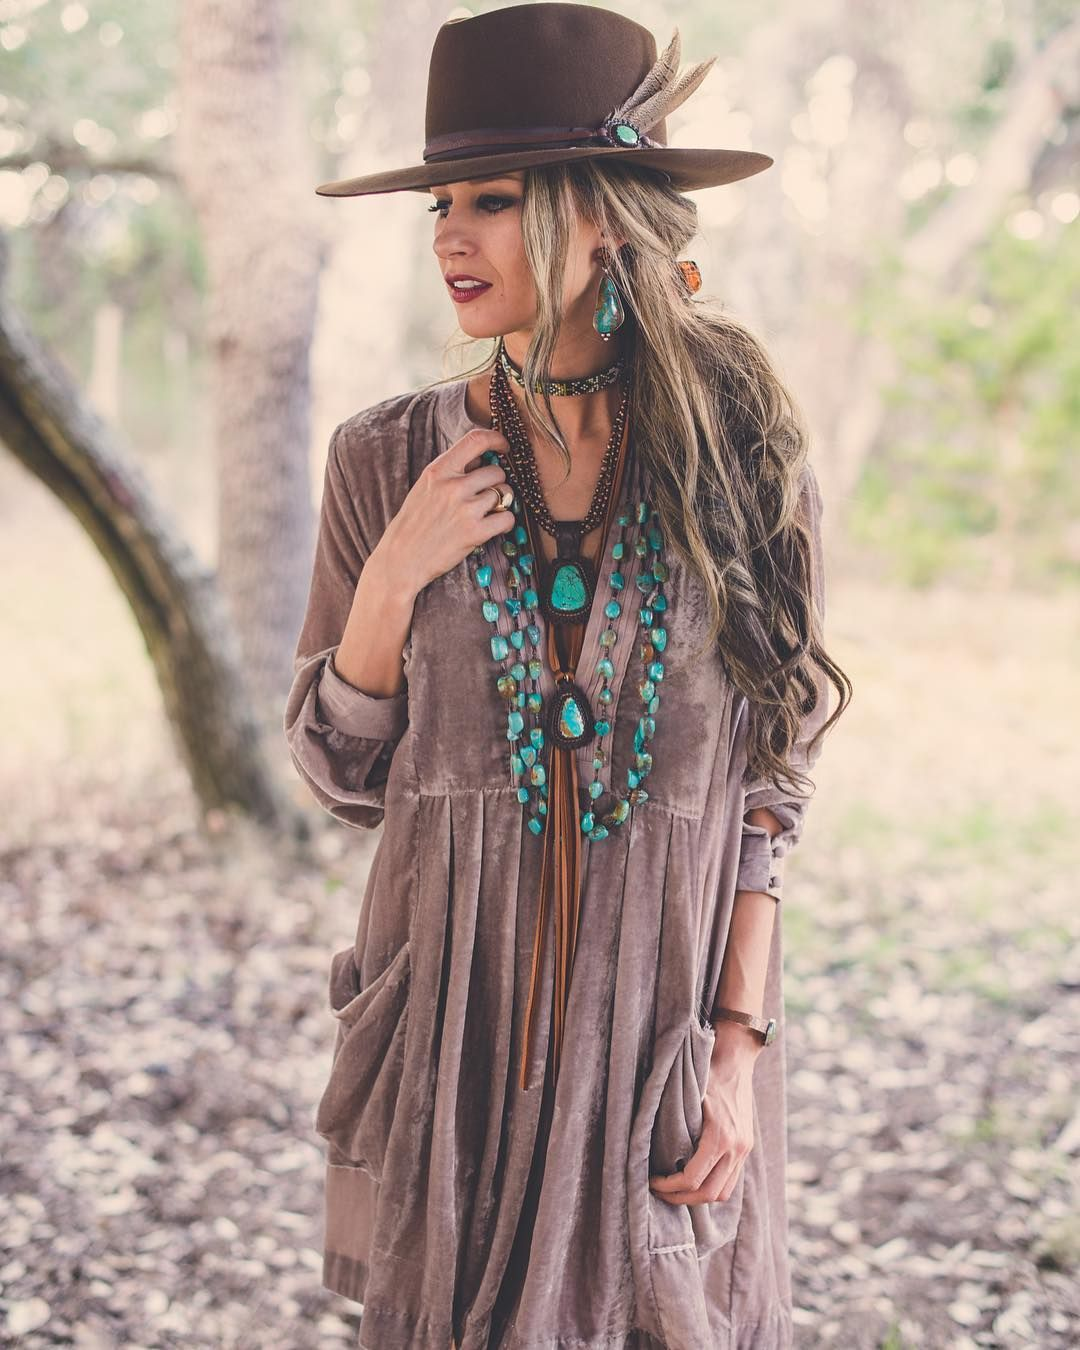 2019 year looks- Hippy Boho chic complements